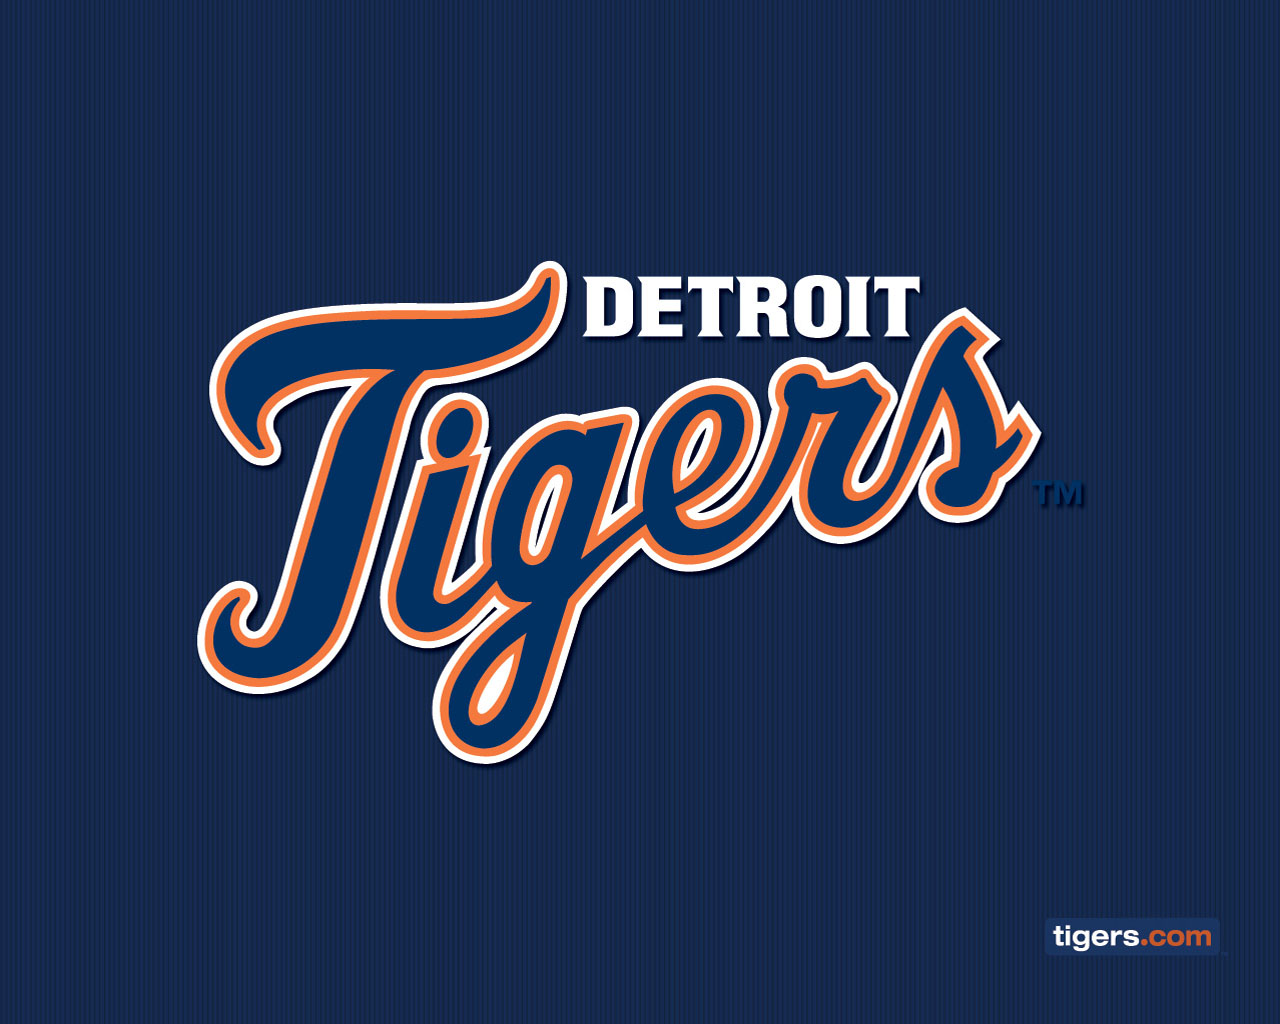 1280x1024 - Detroit Tigers Wallpapers 2